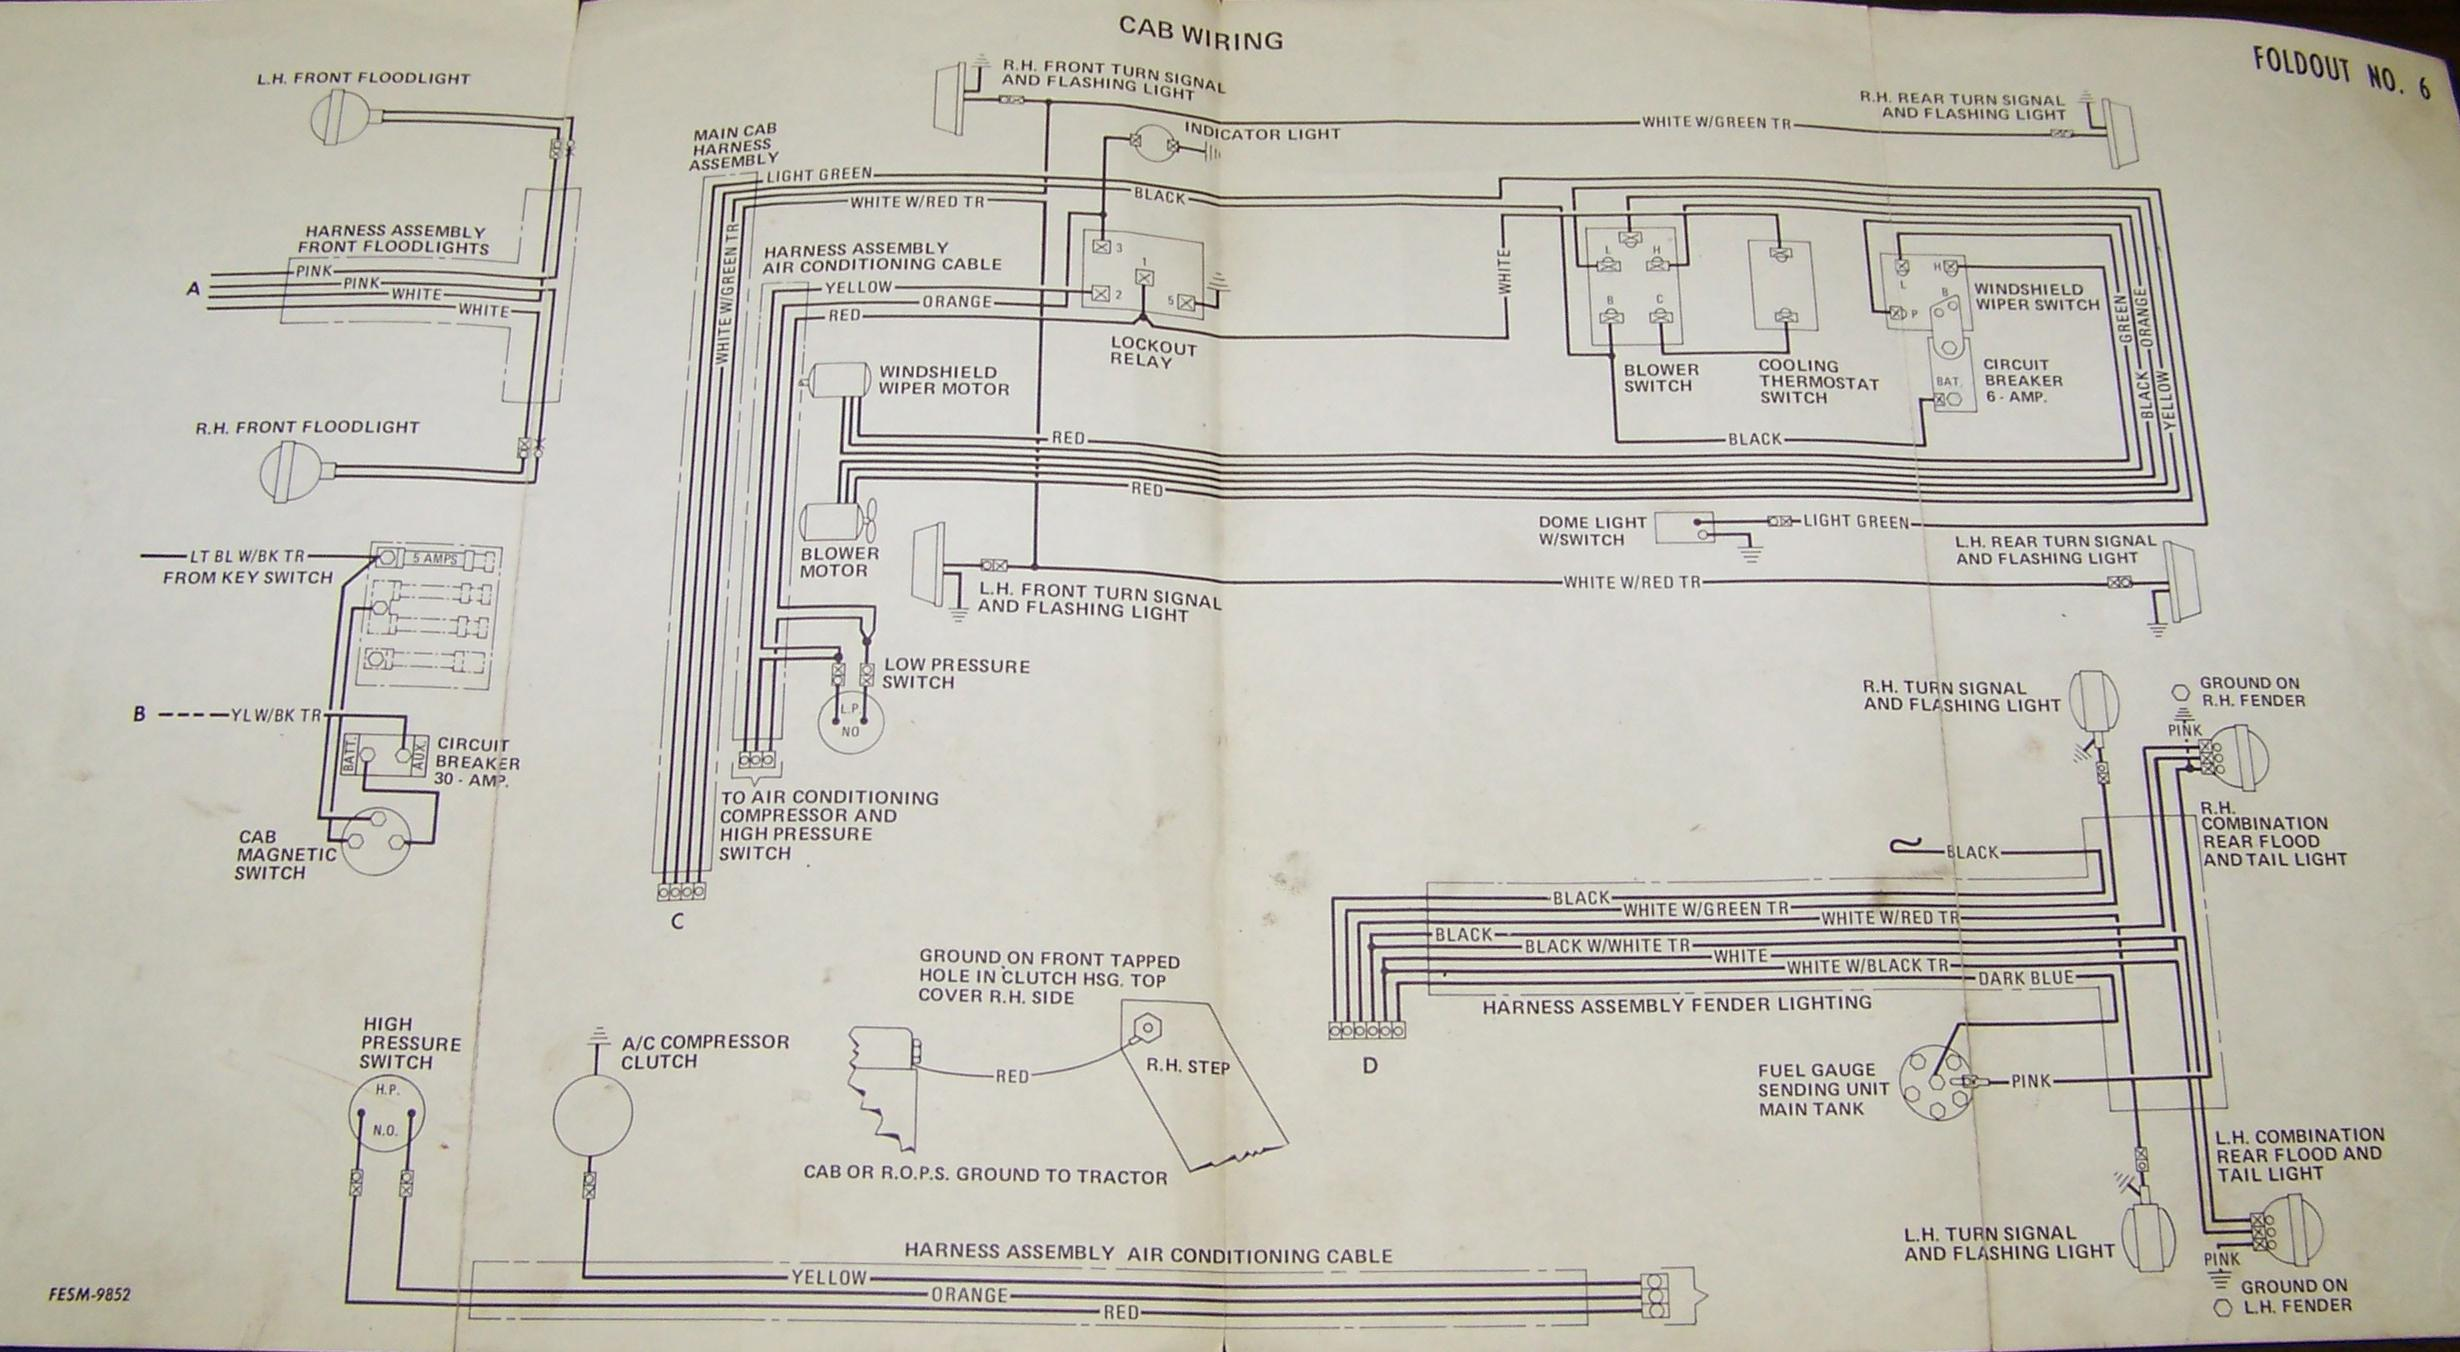 1086 Wiring Diagrams Online Manuual Of Diagram 2003 Dodge Caravan Engine Farmall 400 Schematic Library Rh 80 Skriptoase De Ihc 94 Chevy S10 22l